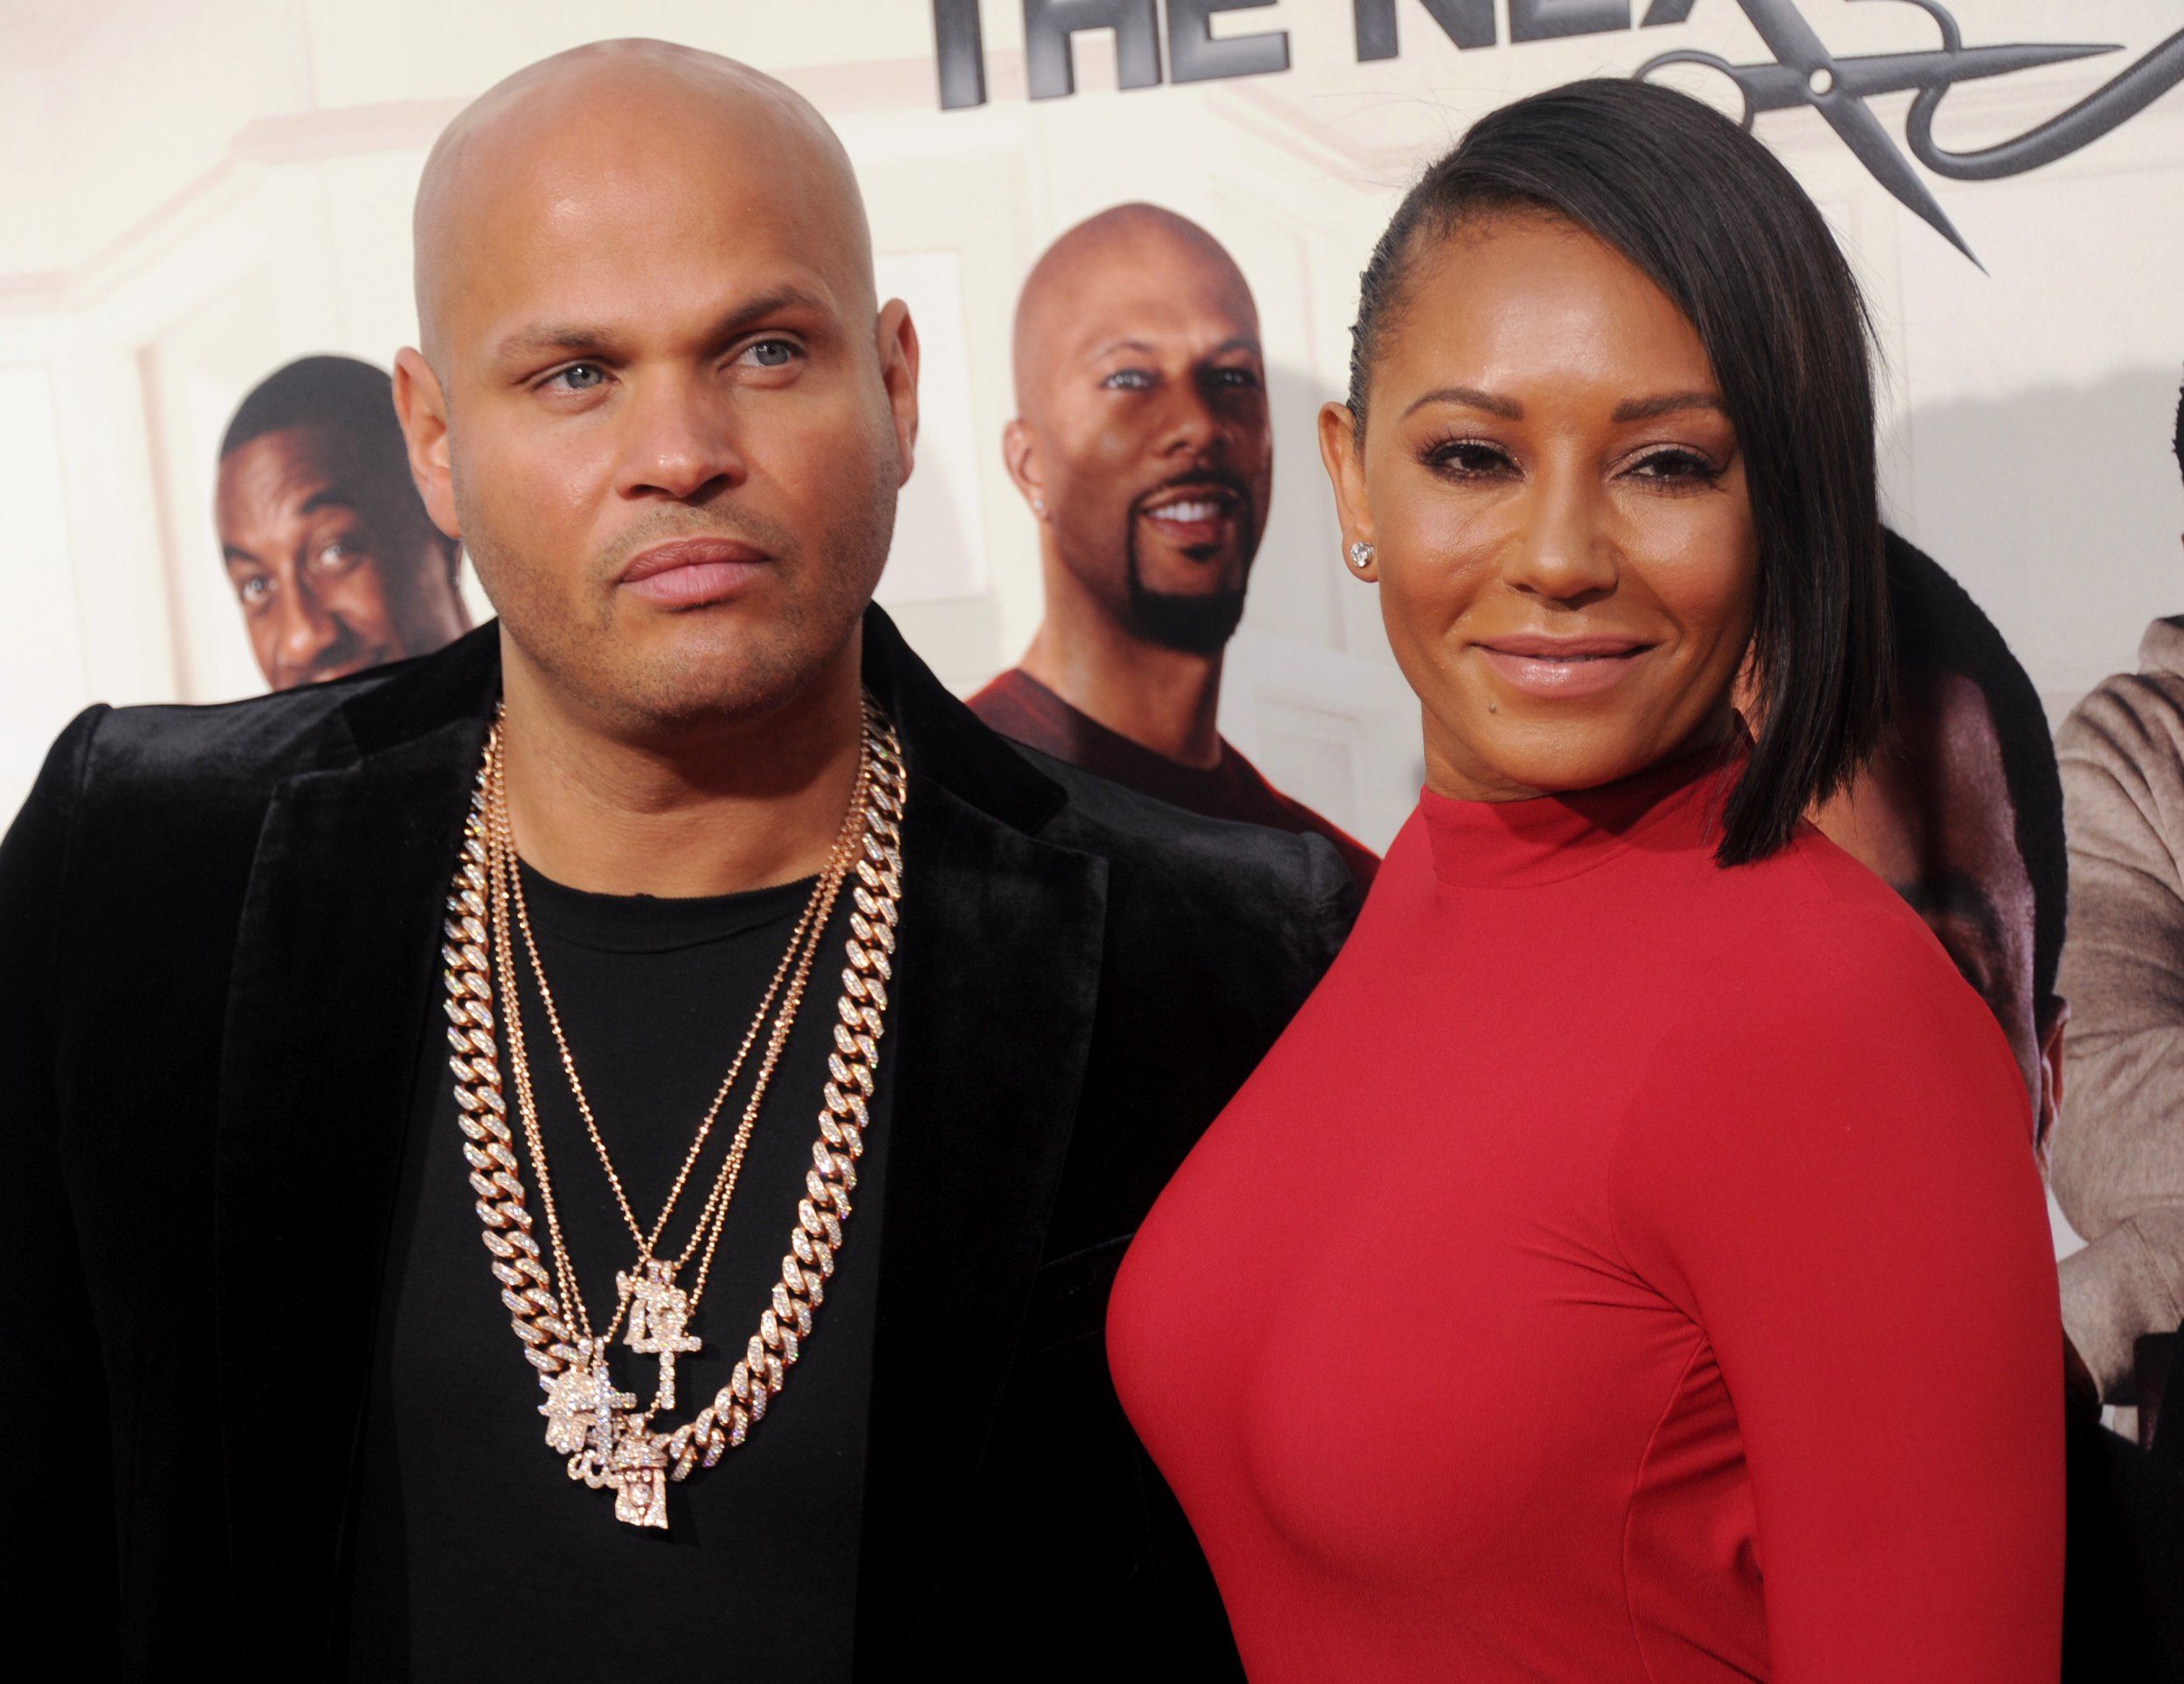 Mel B 'chucks out ex Stephen Belafonte's stuff leaving him only used towels'